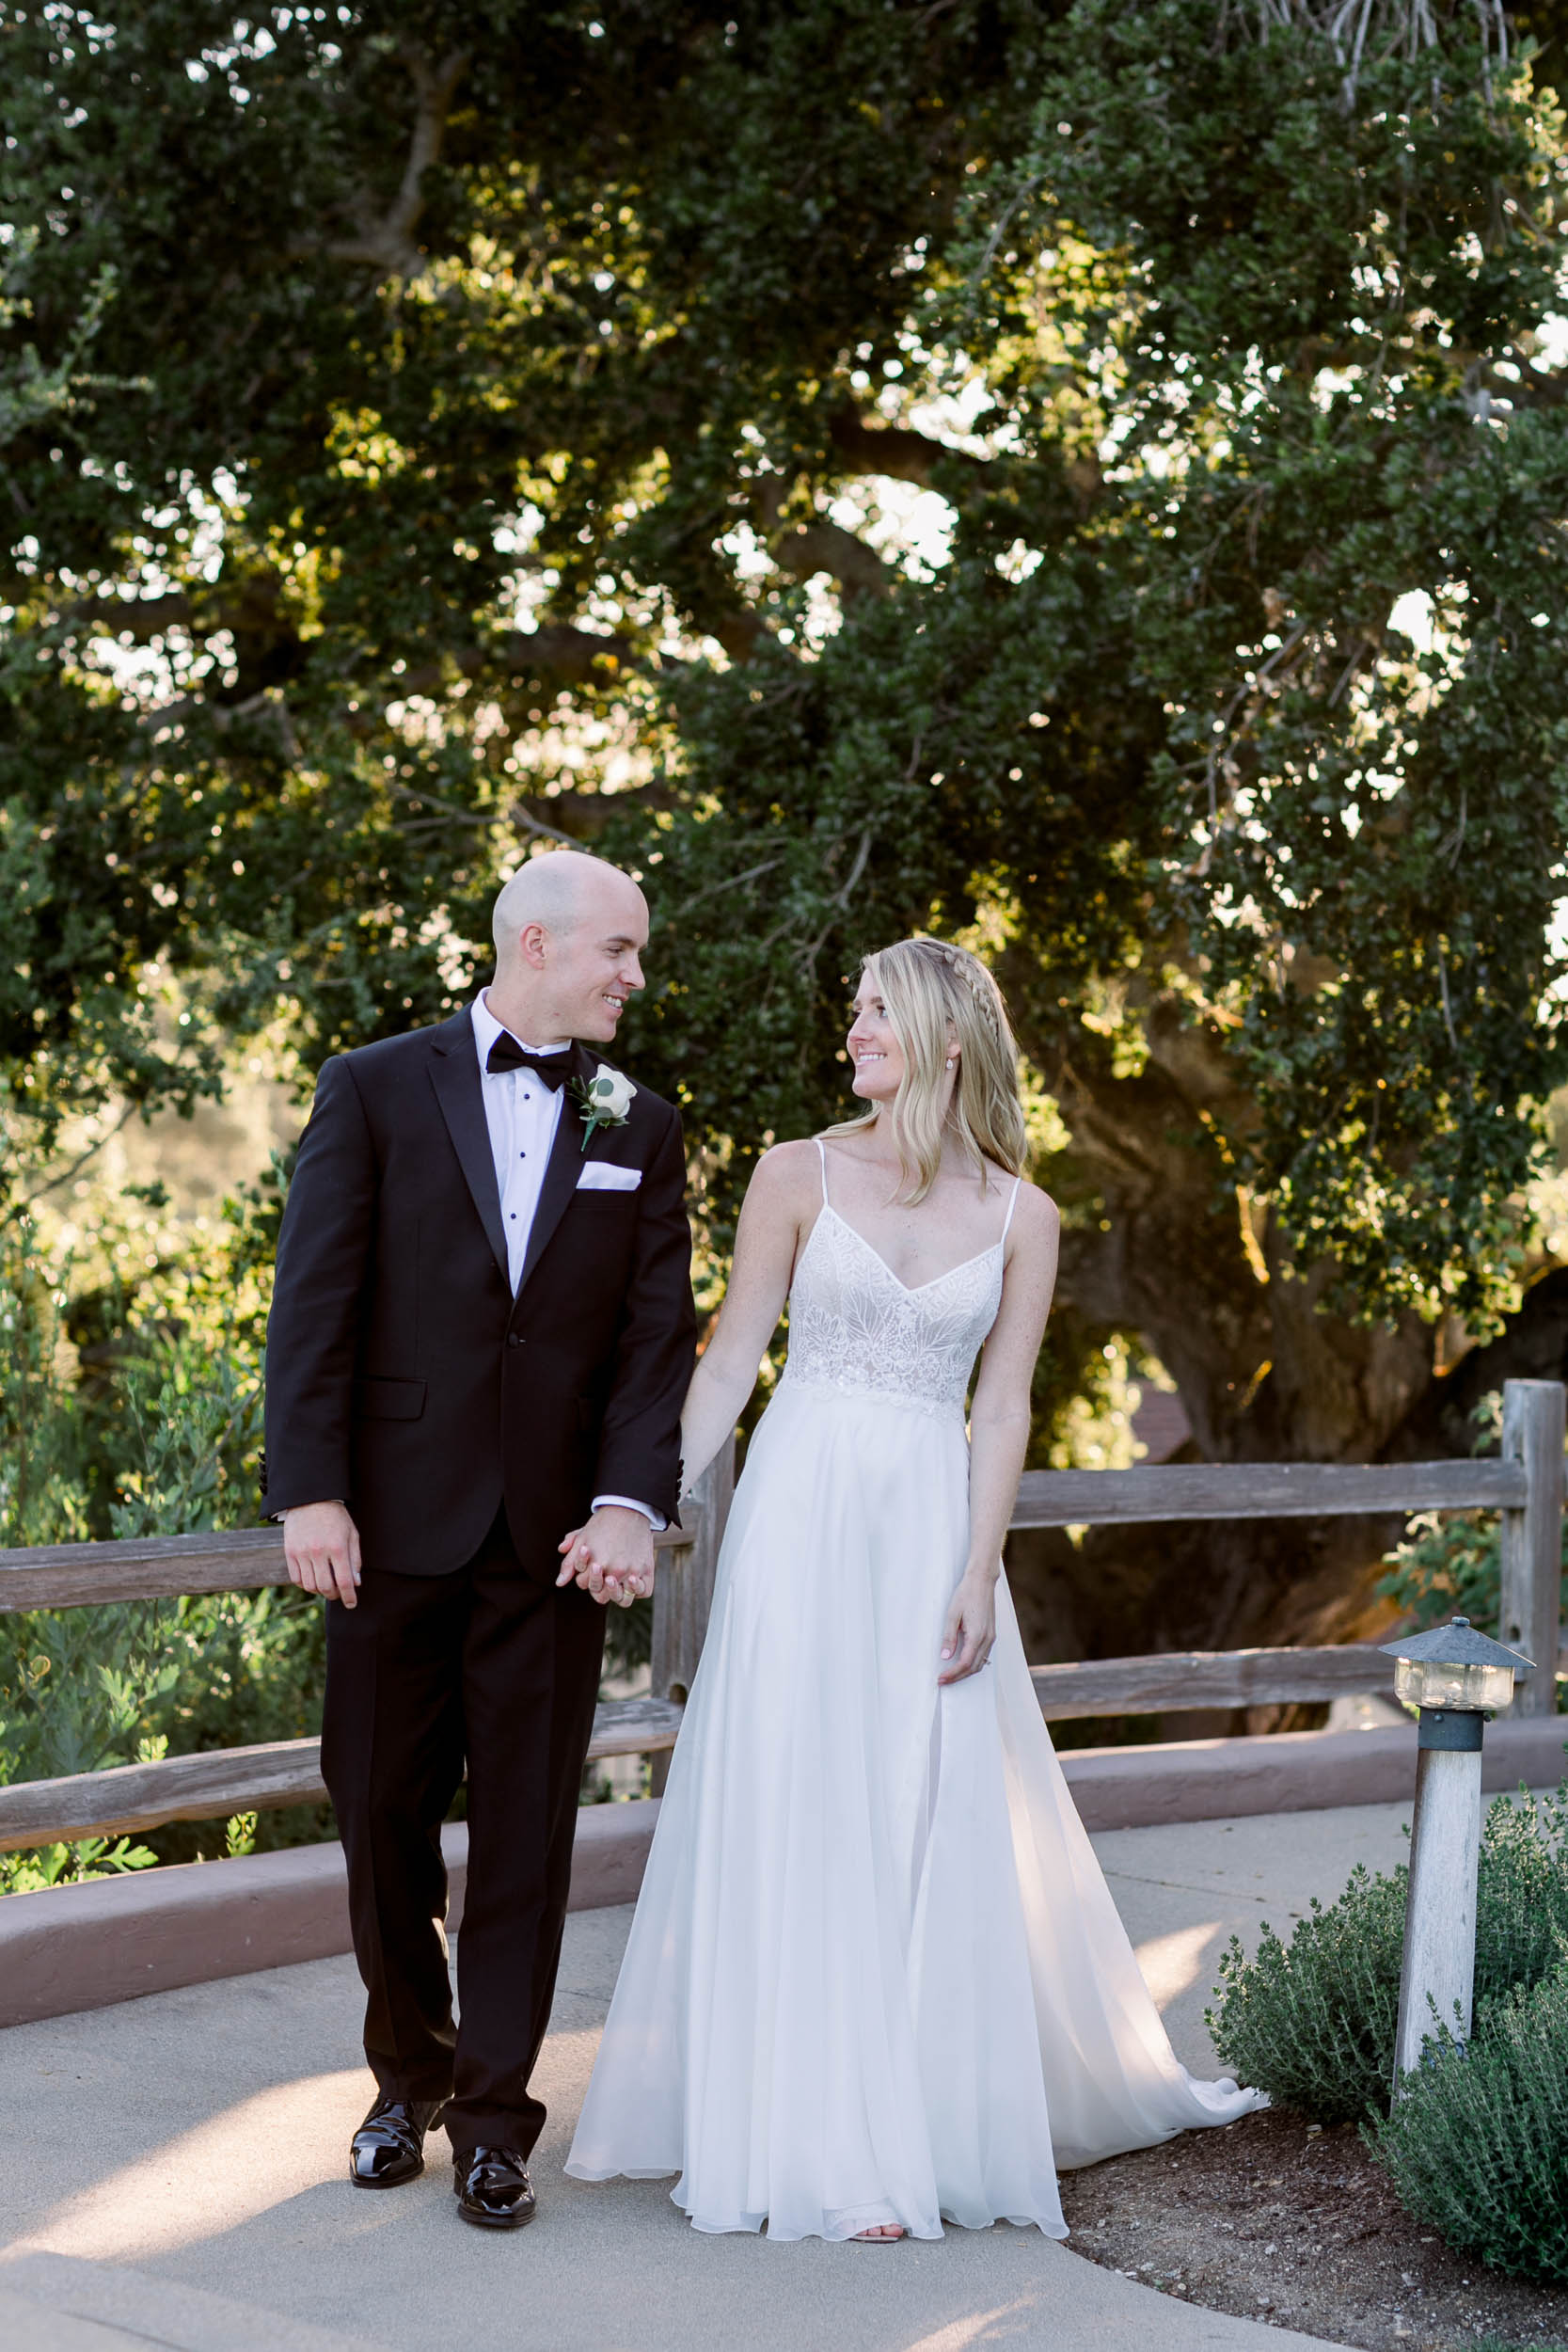 C+D_Holman Ranch Wedding_Carmel Valley_Buena Lane Photography_060619_ER735.jpg